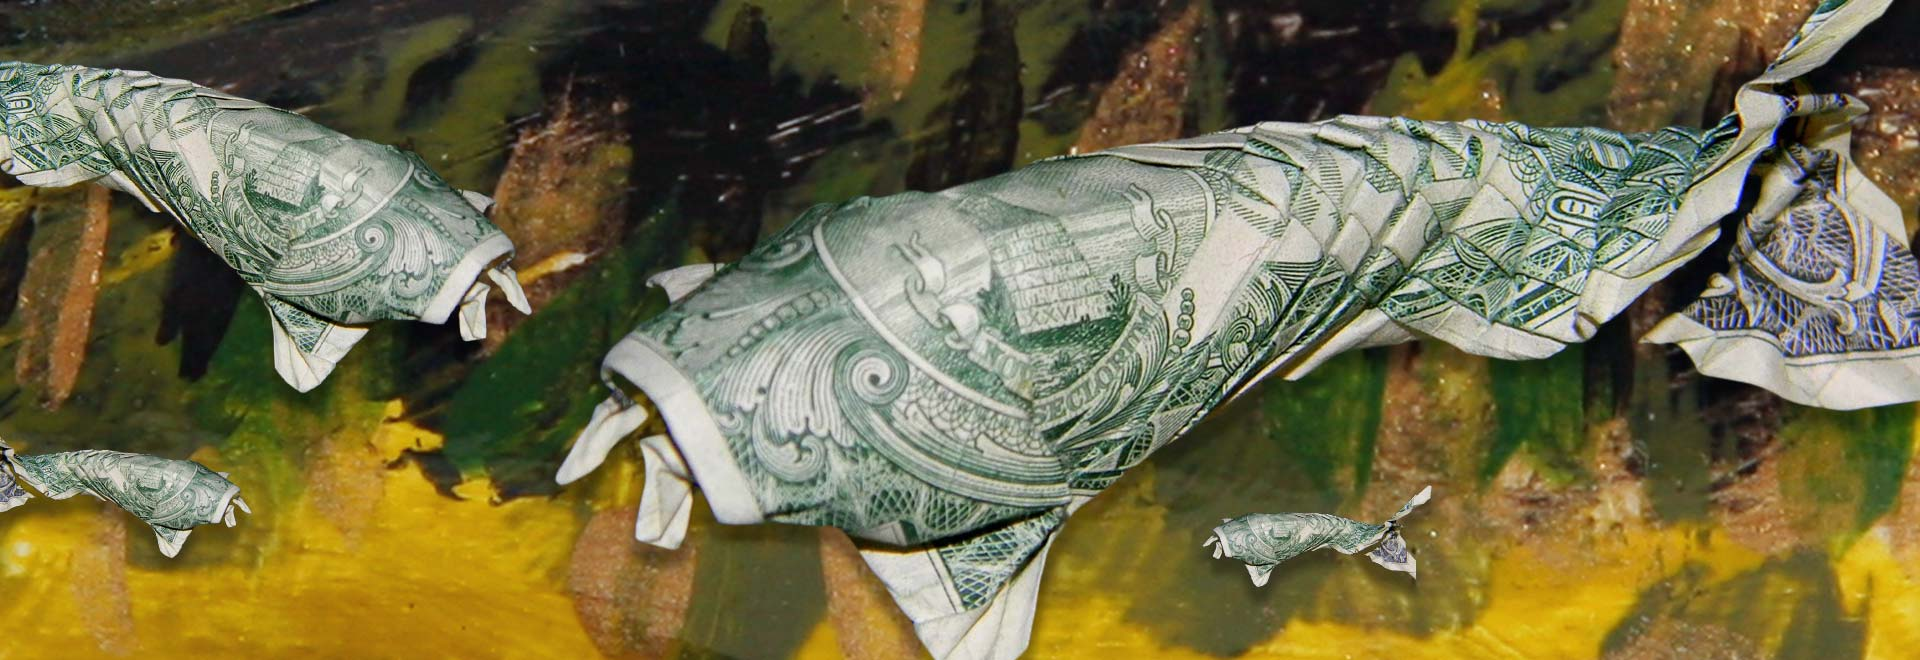 Fish Decoy Folk Art